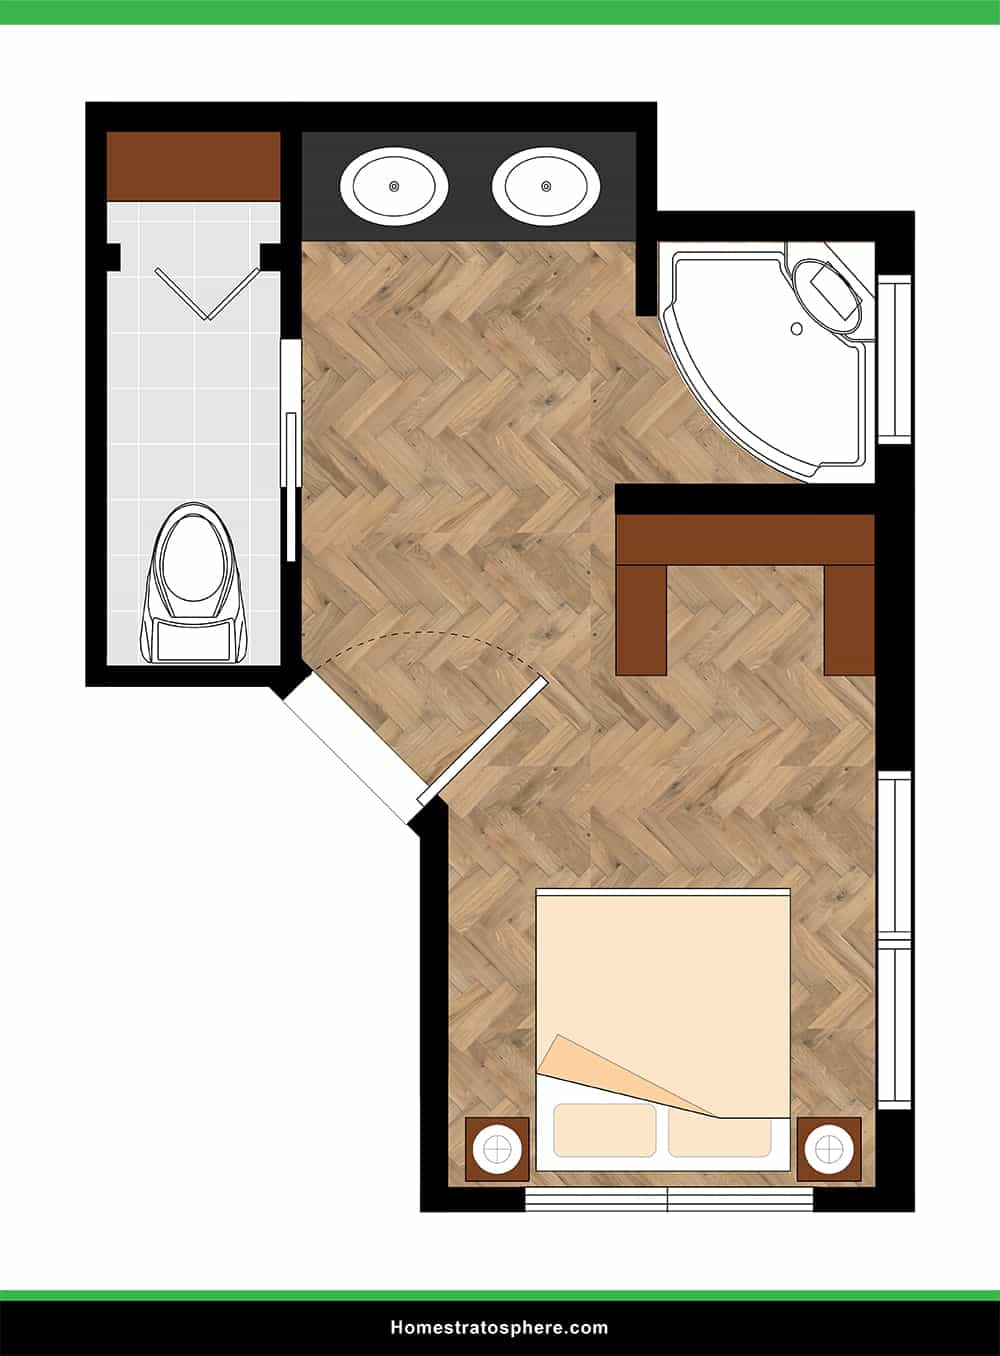 Angled Master Bedroom with Open Bathroom Configuration